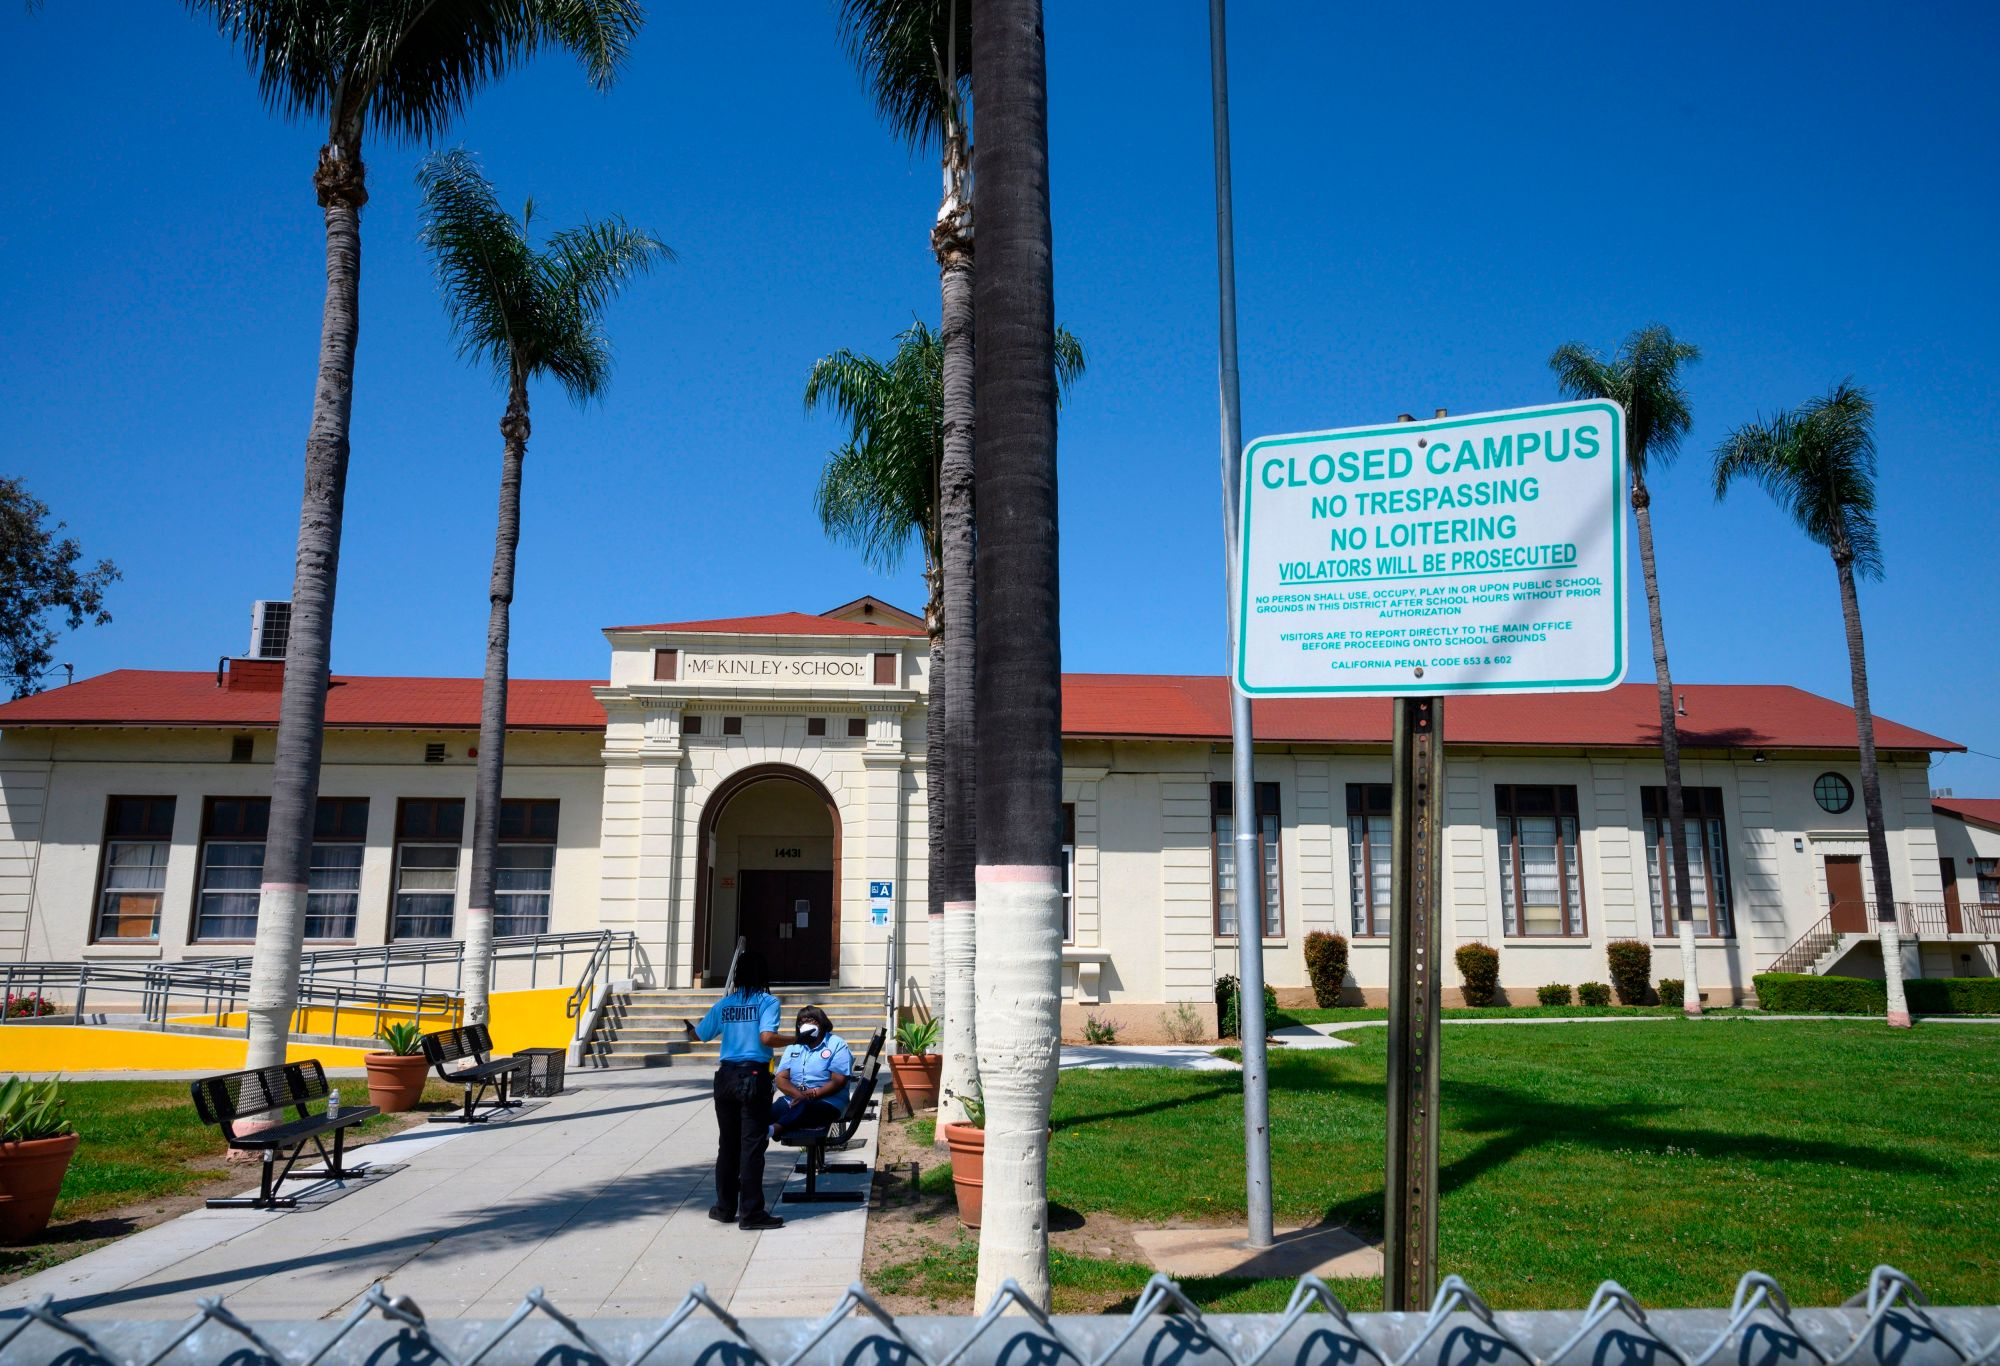 Two security guards talk on the campus of the closed McKinley School, part of the Los Angeles Unified School District system, in Compton on April 28, 2020. (ROBYN BECK/AFP via Getty Images)